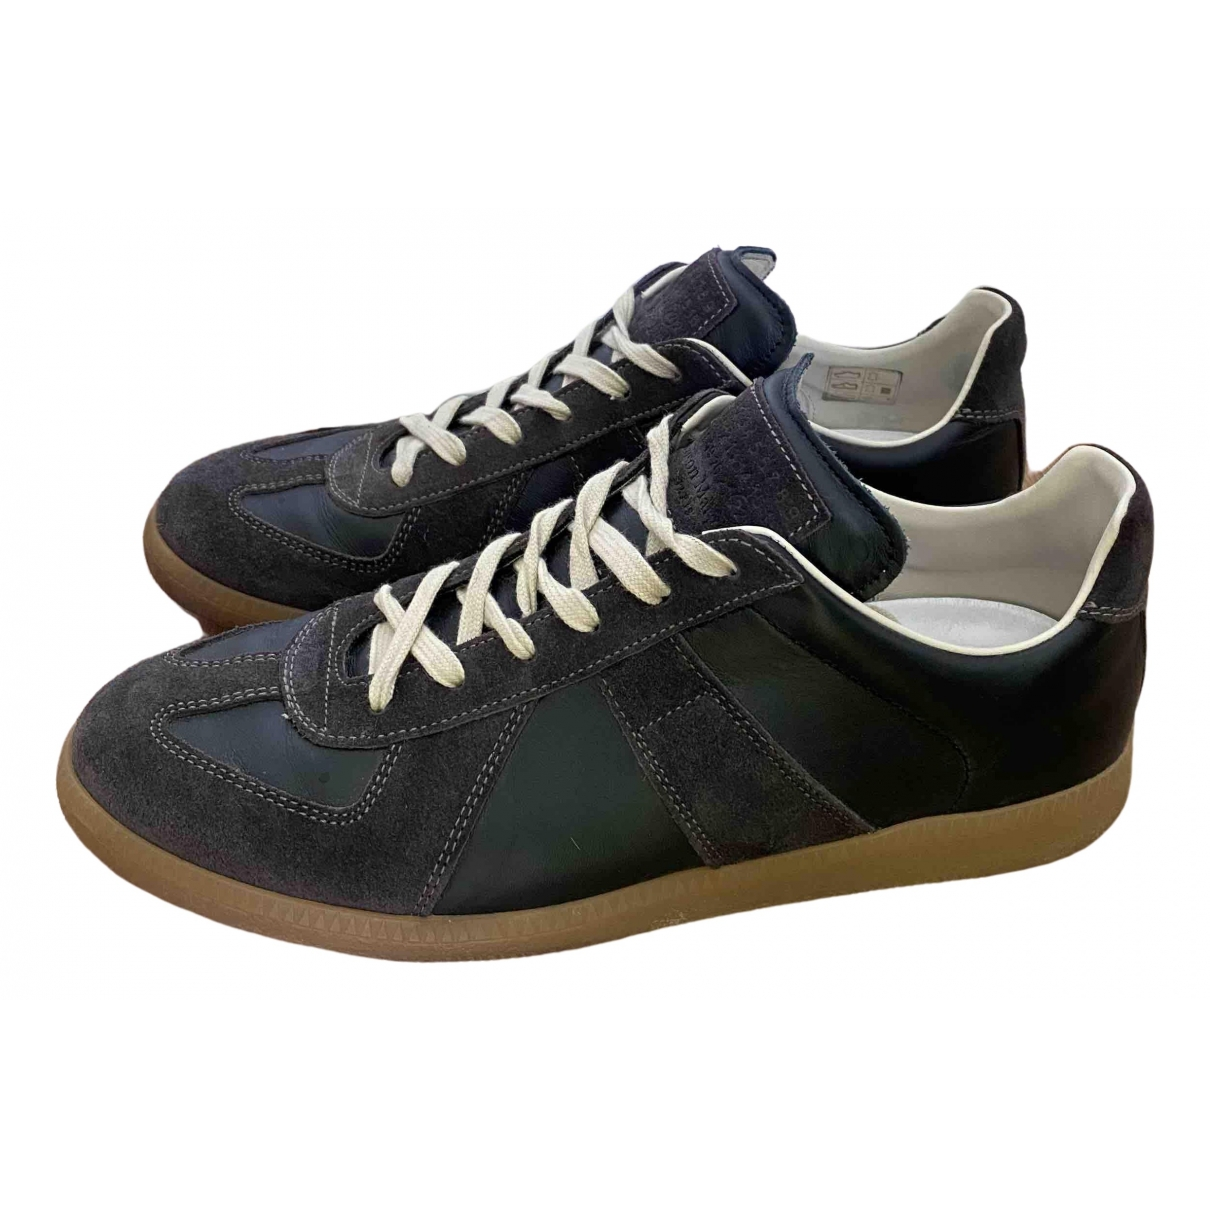 Maison Martin Margiela Replica Anthracite Leather Trainers for Men 41 EU